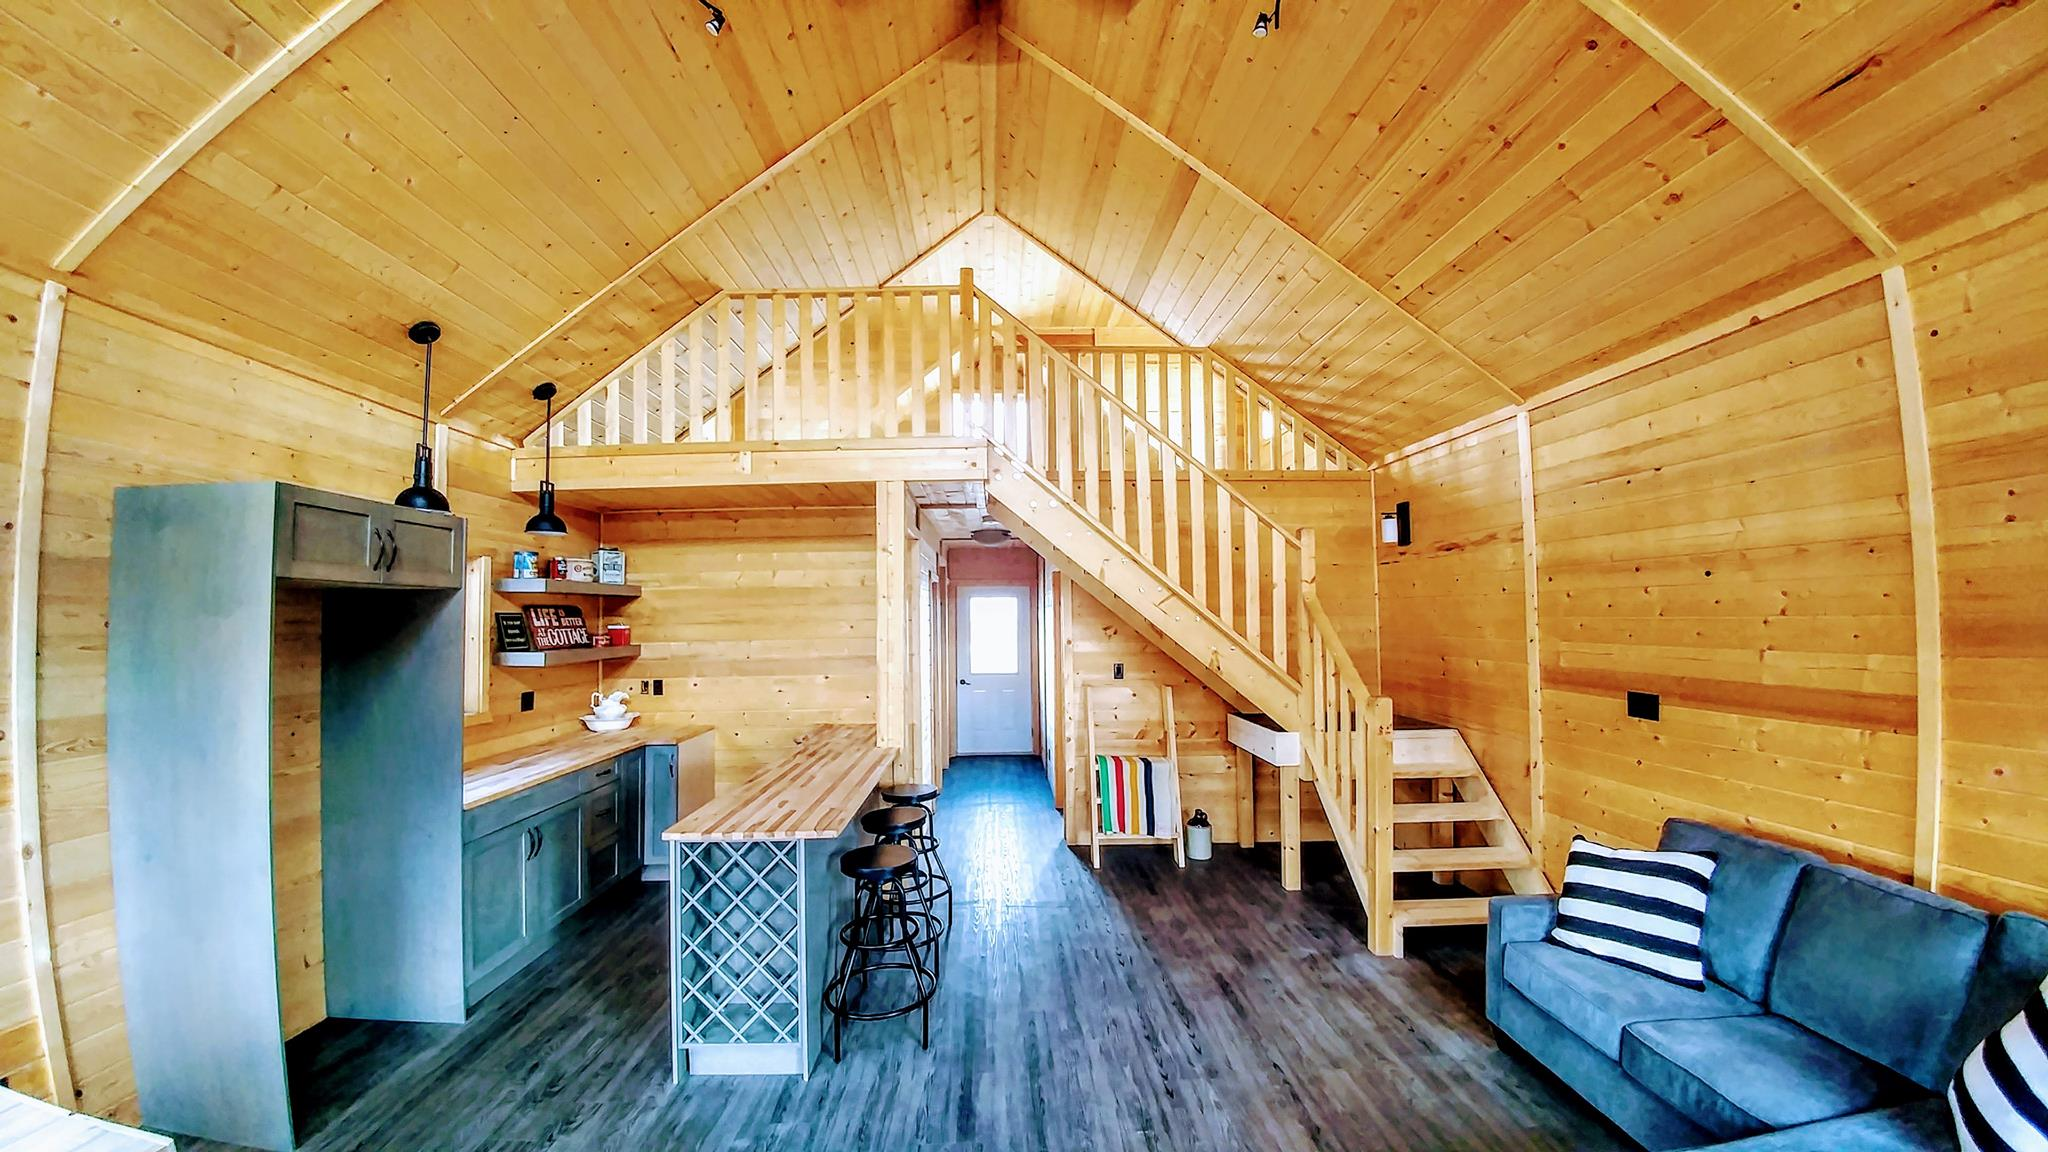 Blog Alberta Cabin Packages Aluminum Wiring In Homes Also Known As A Garage Suite Carriage House Backyard Laneway Or Accessory Dwelling Garden Suites Feature Minimum Of Kitchen Bathroom